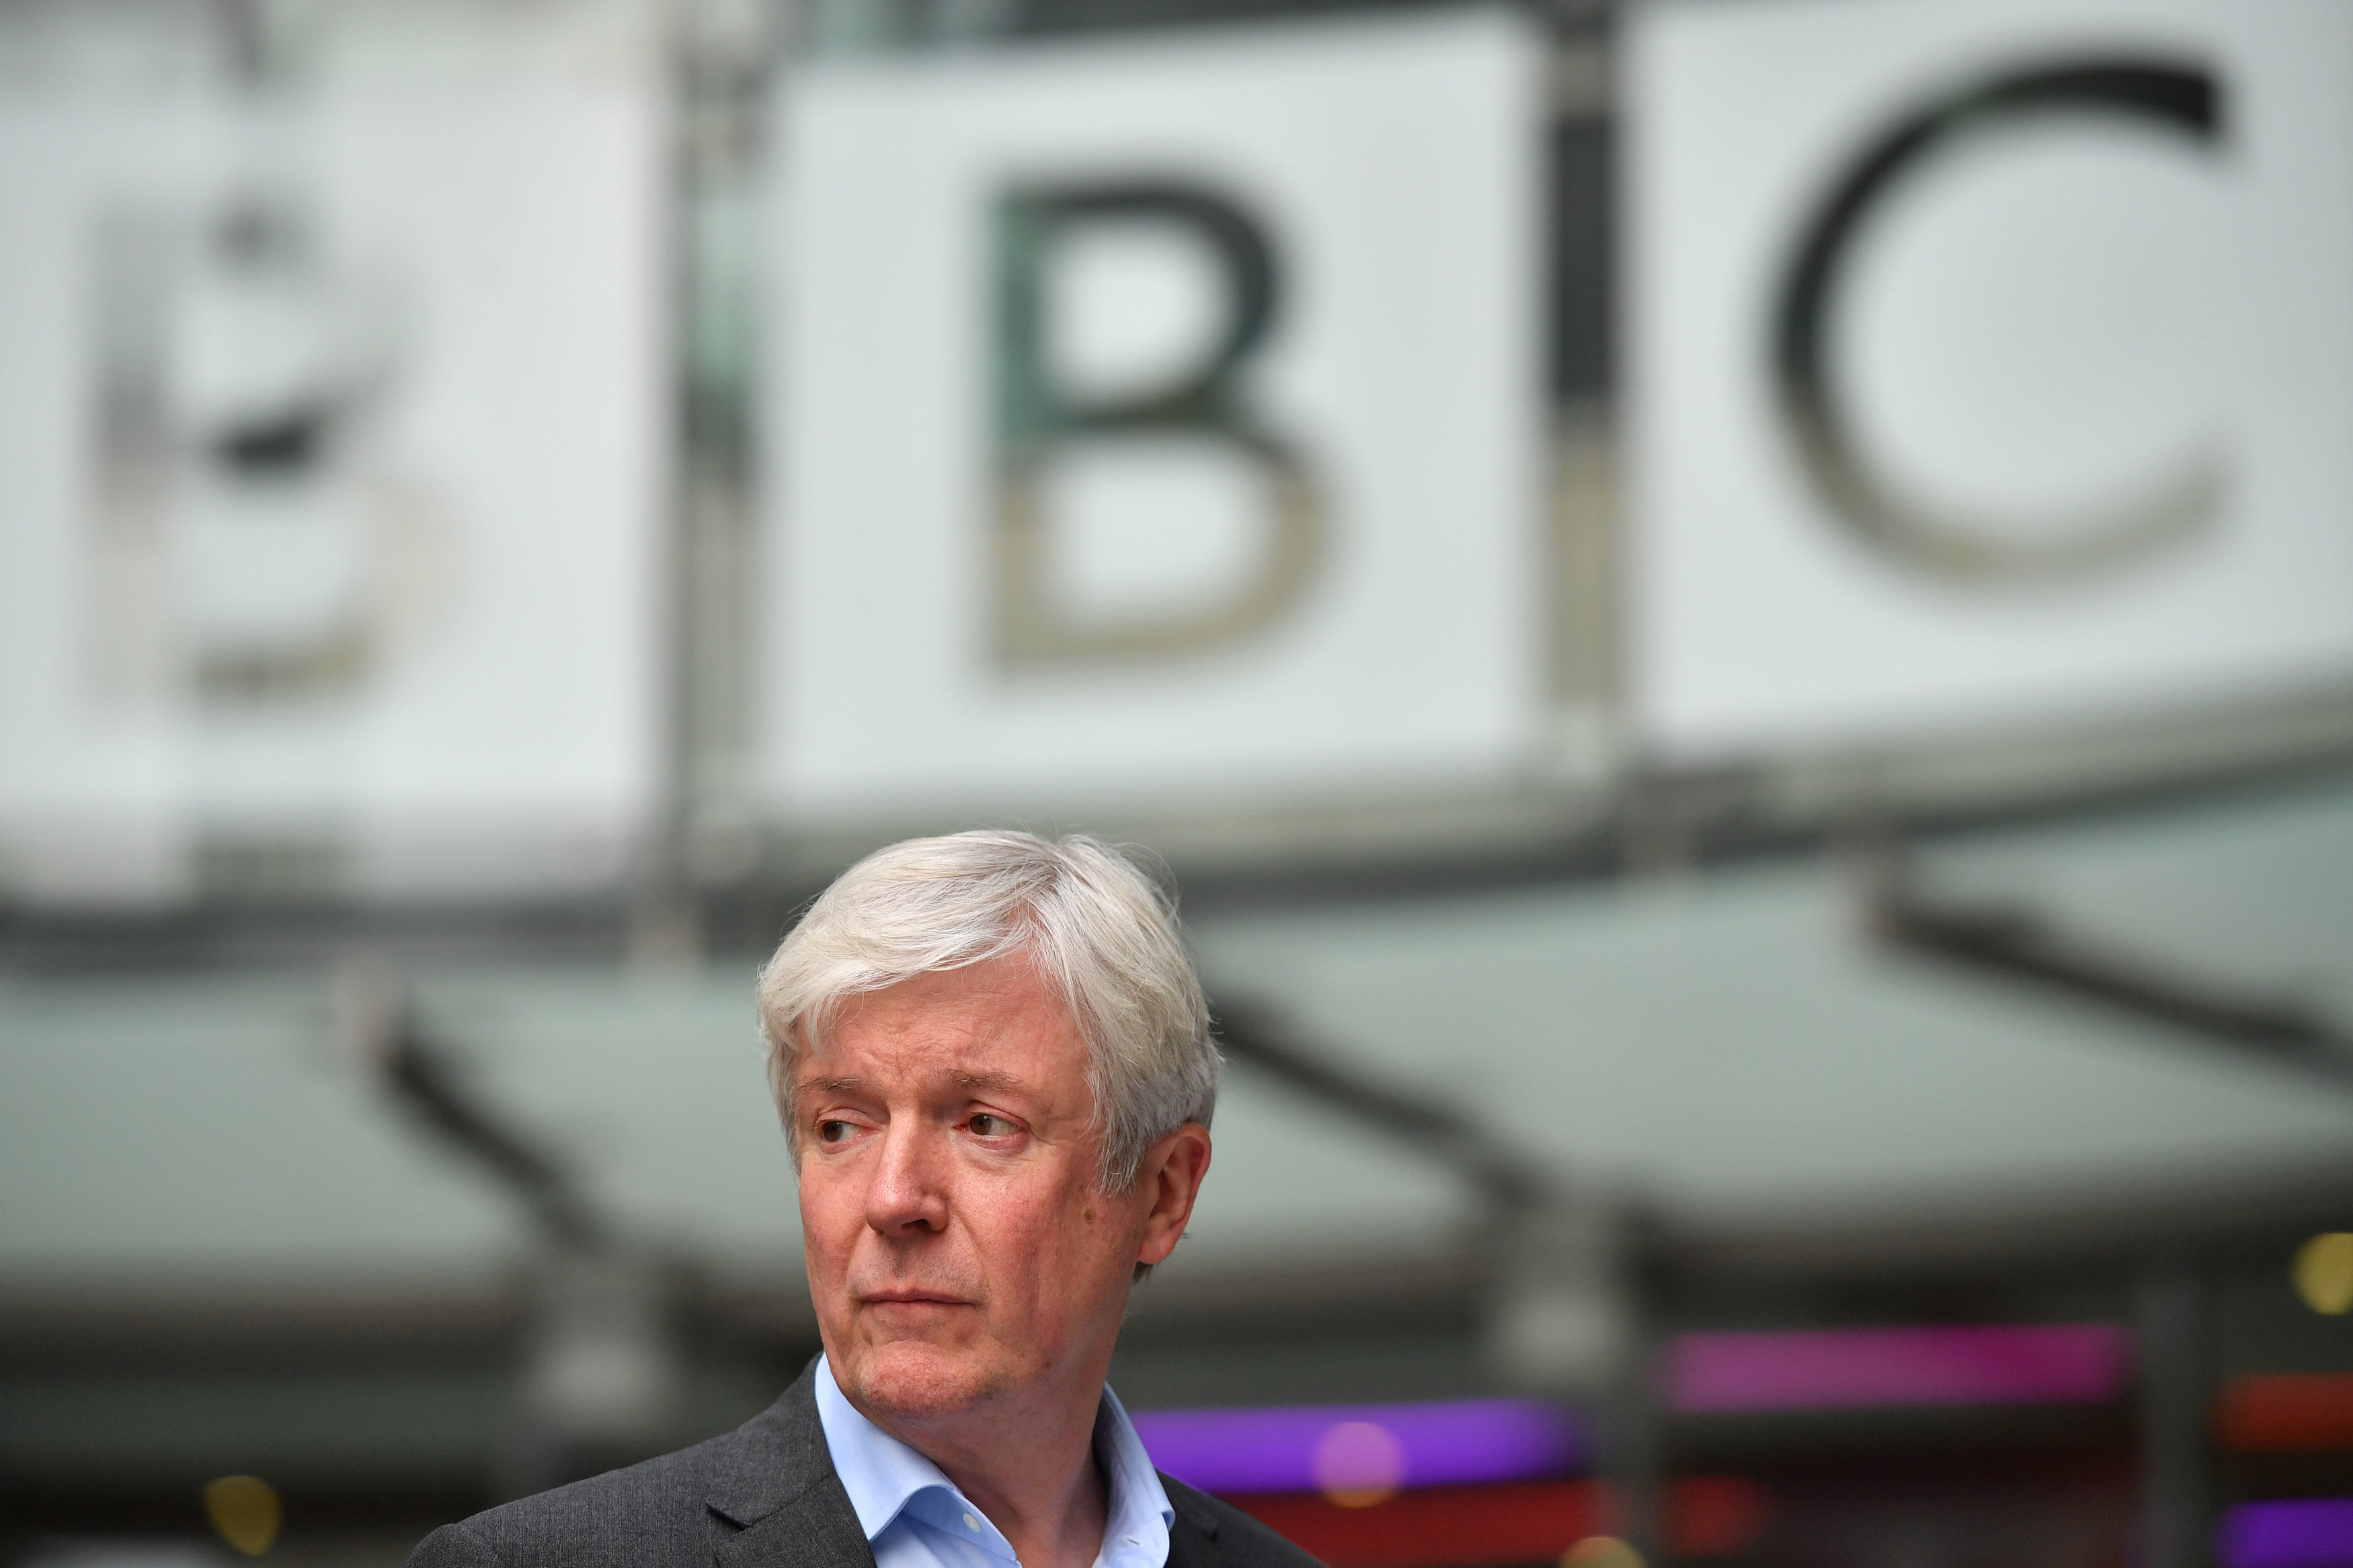 BBC to restrict free over 75 TV licence to pension credit recipients